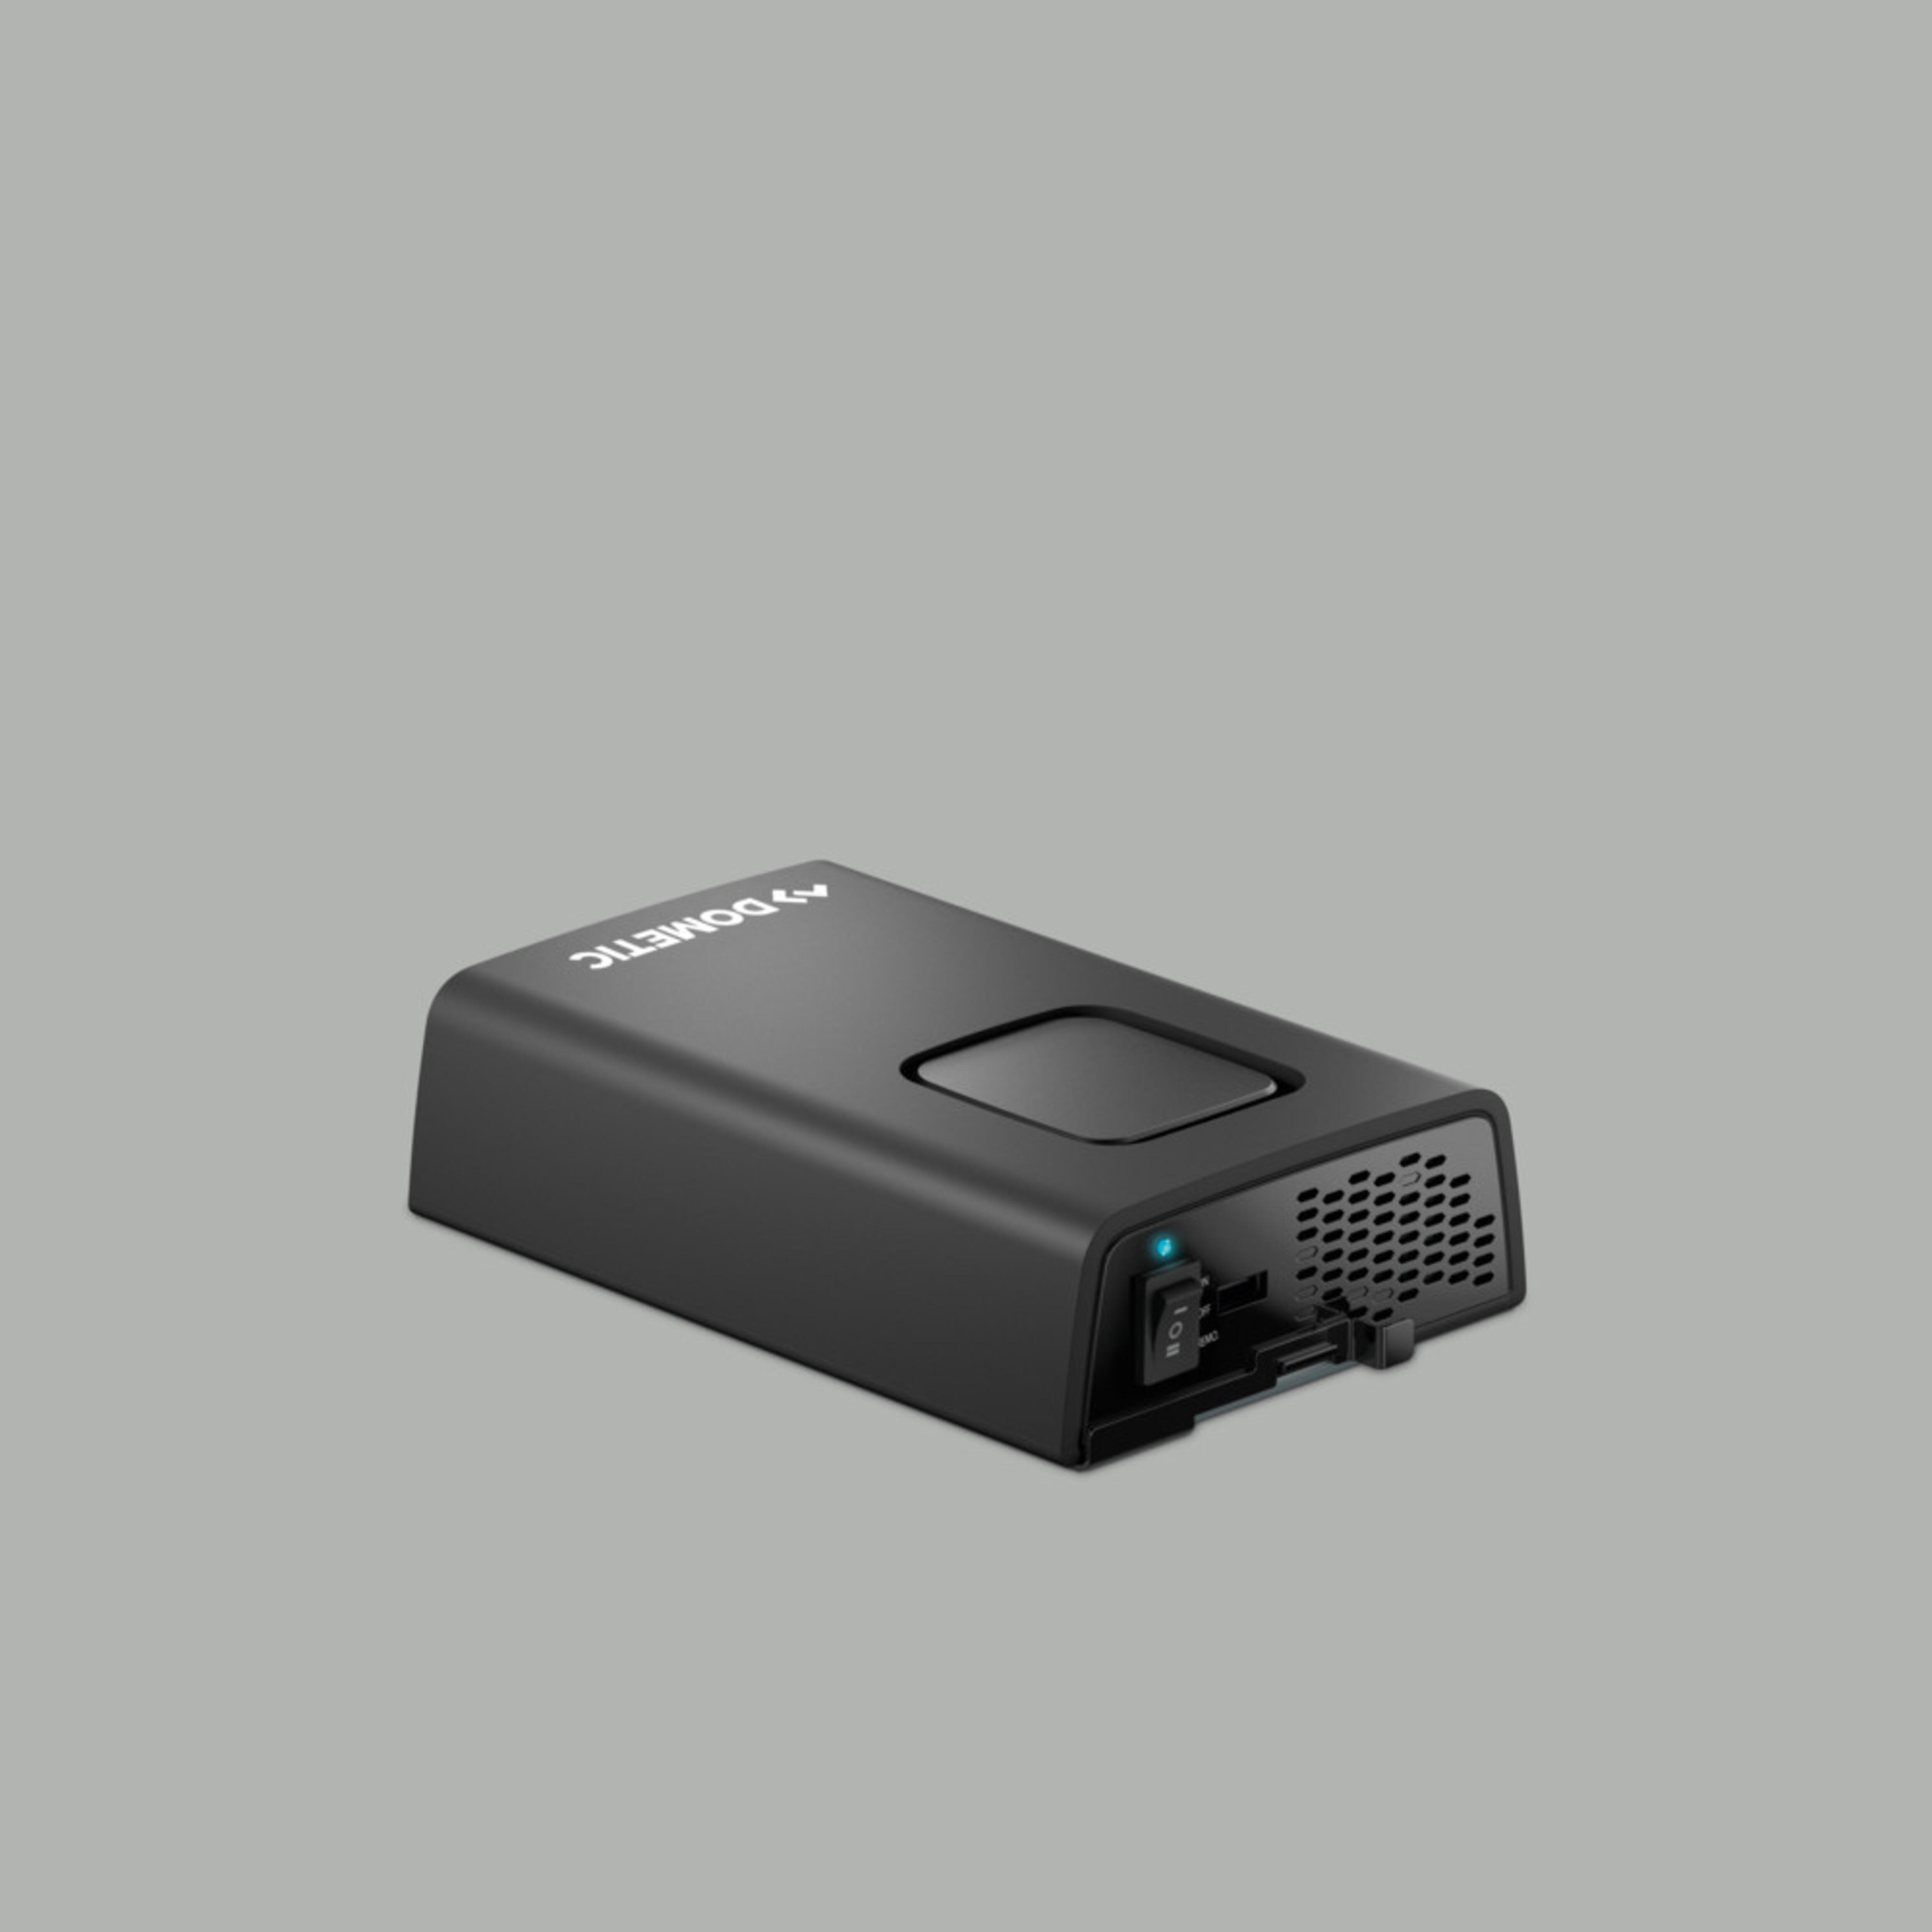 Dometic SinePower DSP 224